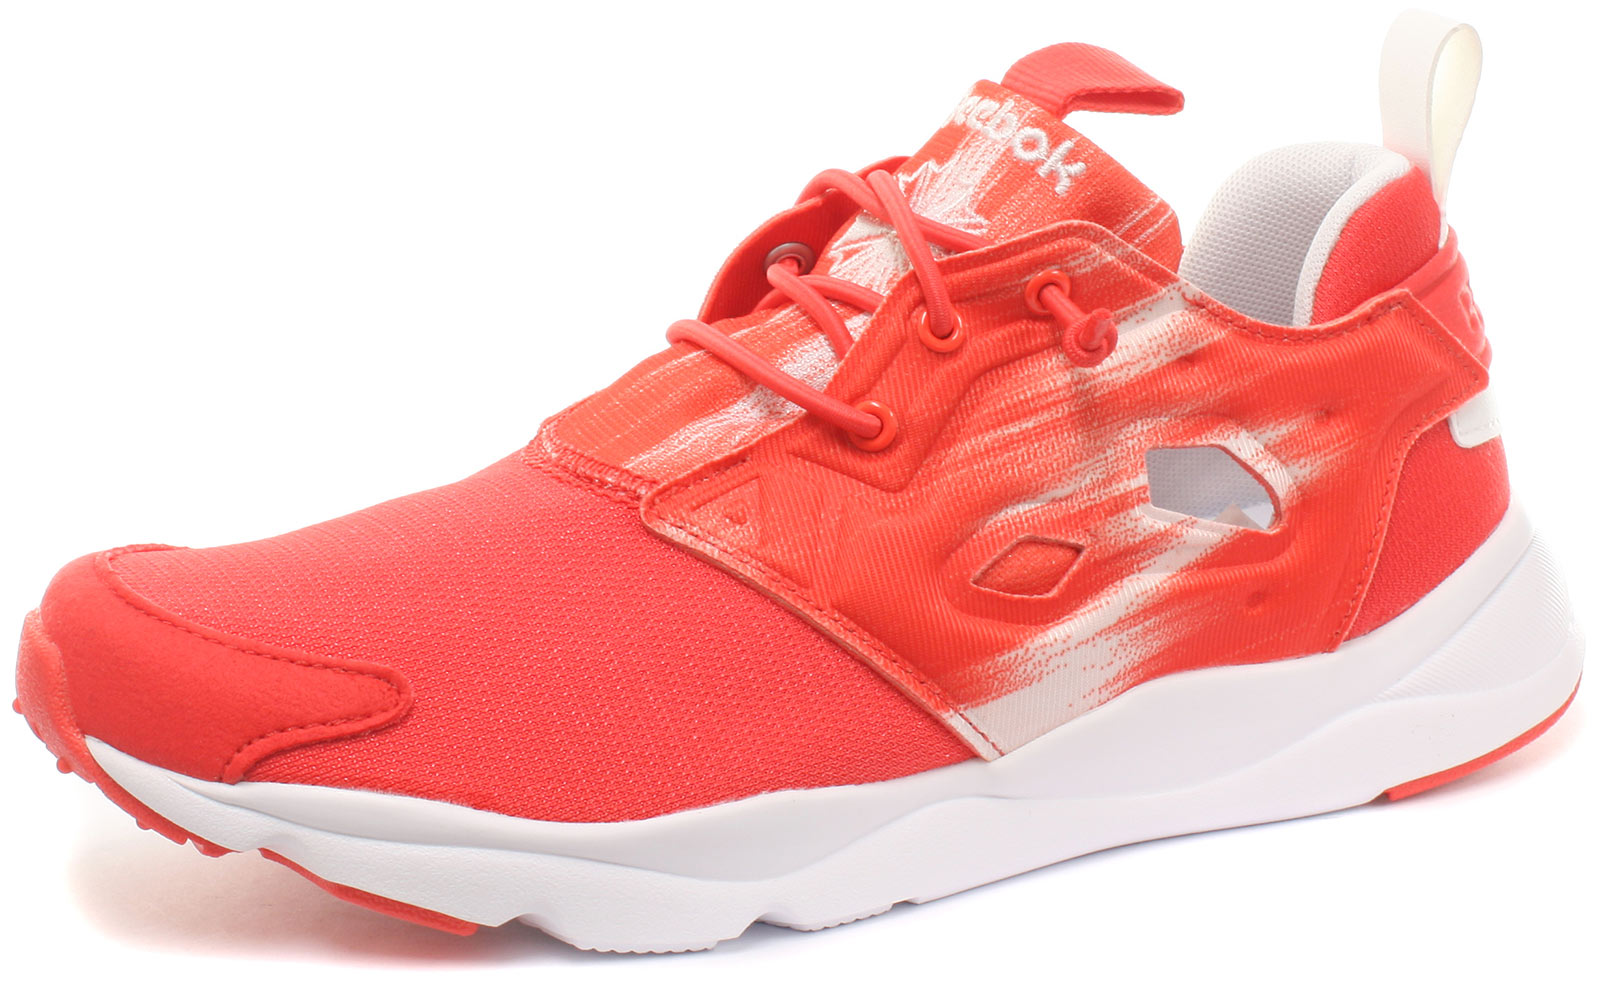 New Reebok Classic Furylite Contemporary Womens Trainers ALL SIZES